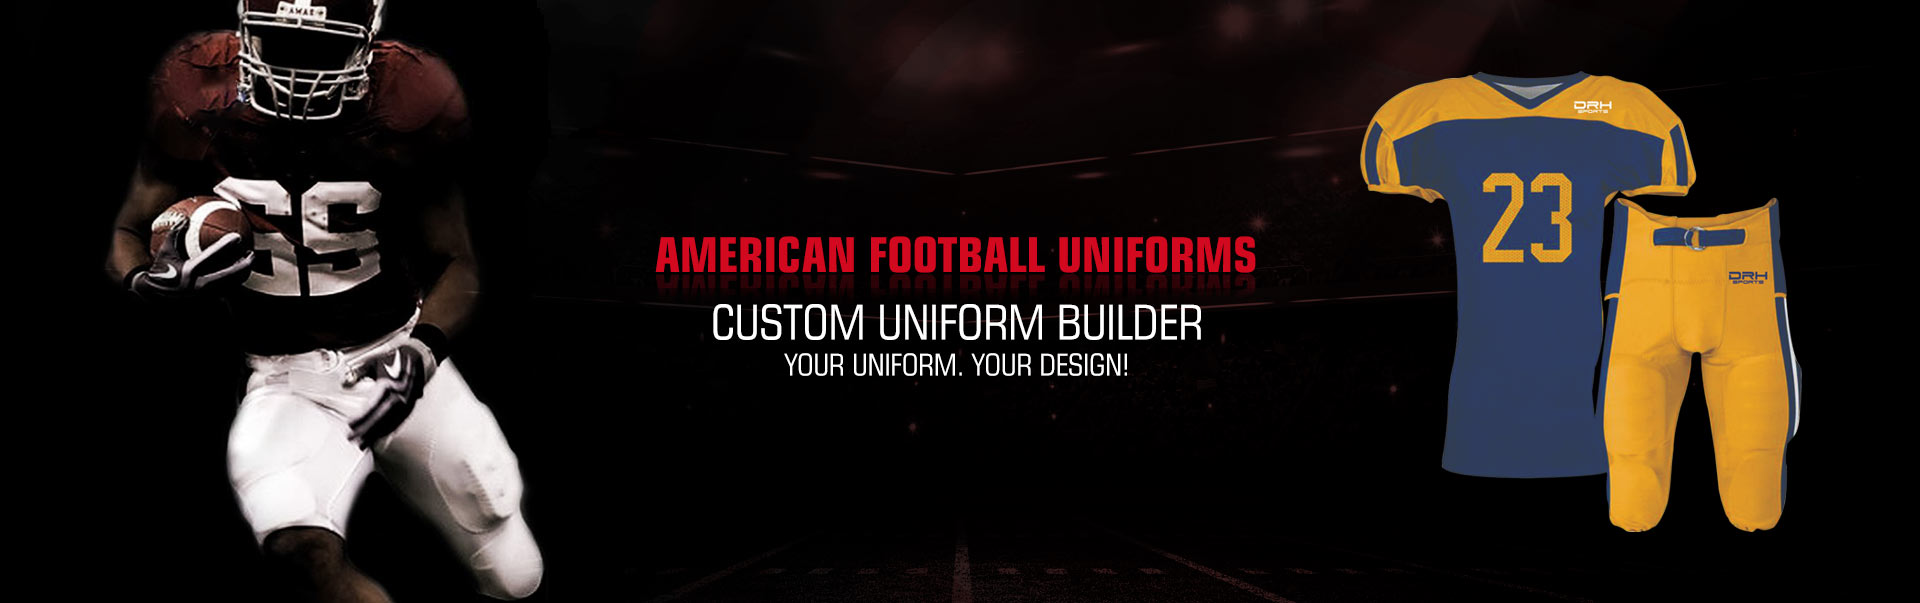 American Football Uniform Wholesaler, Suppliers in Valencia